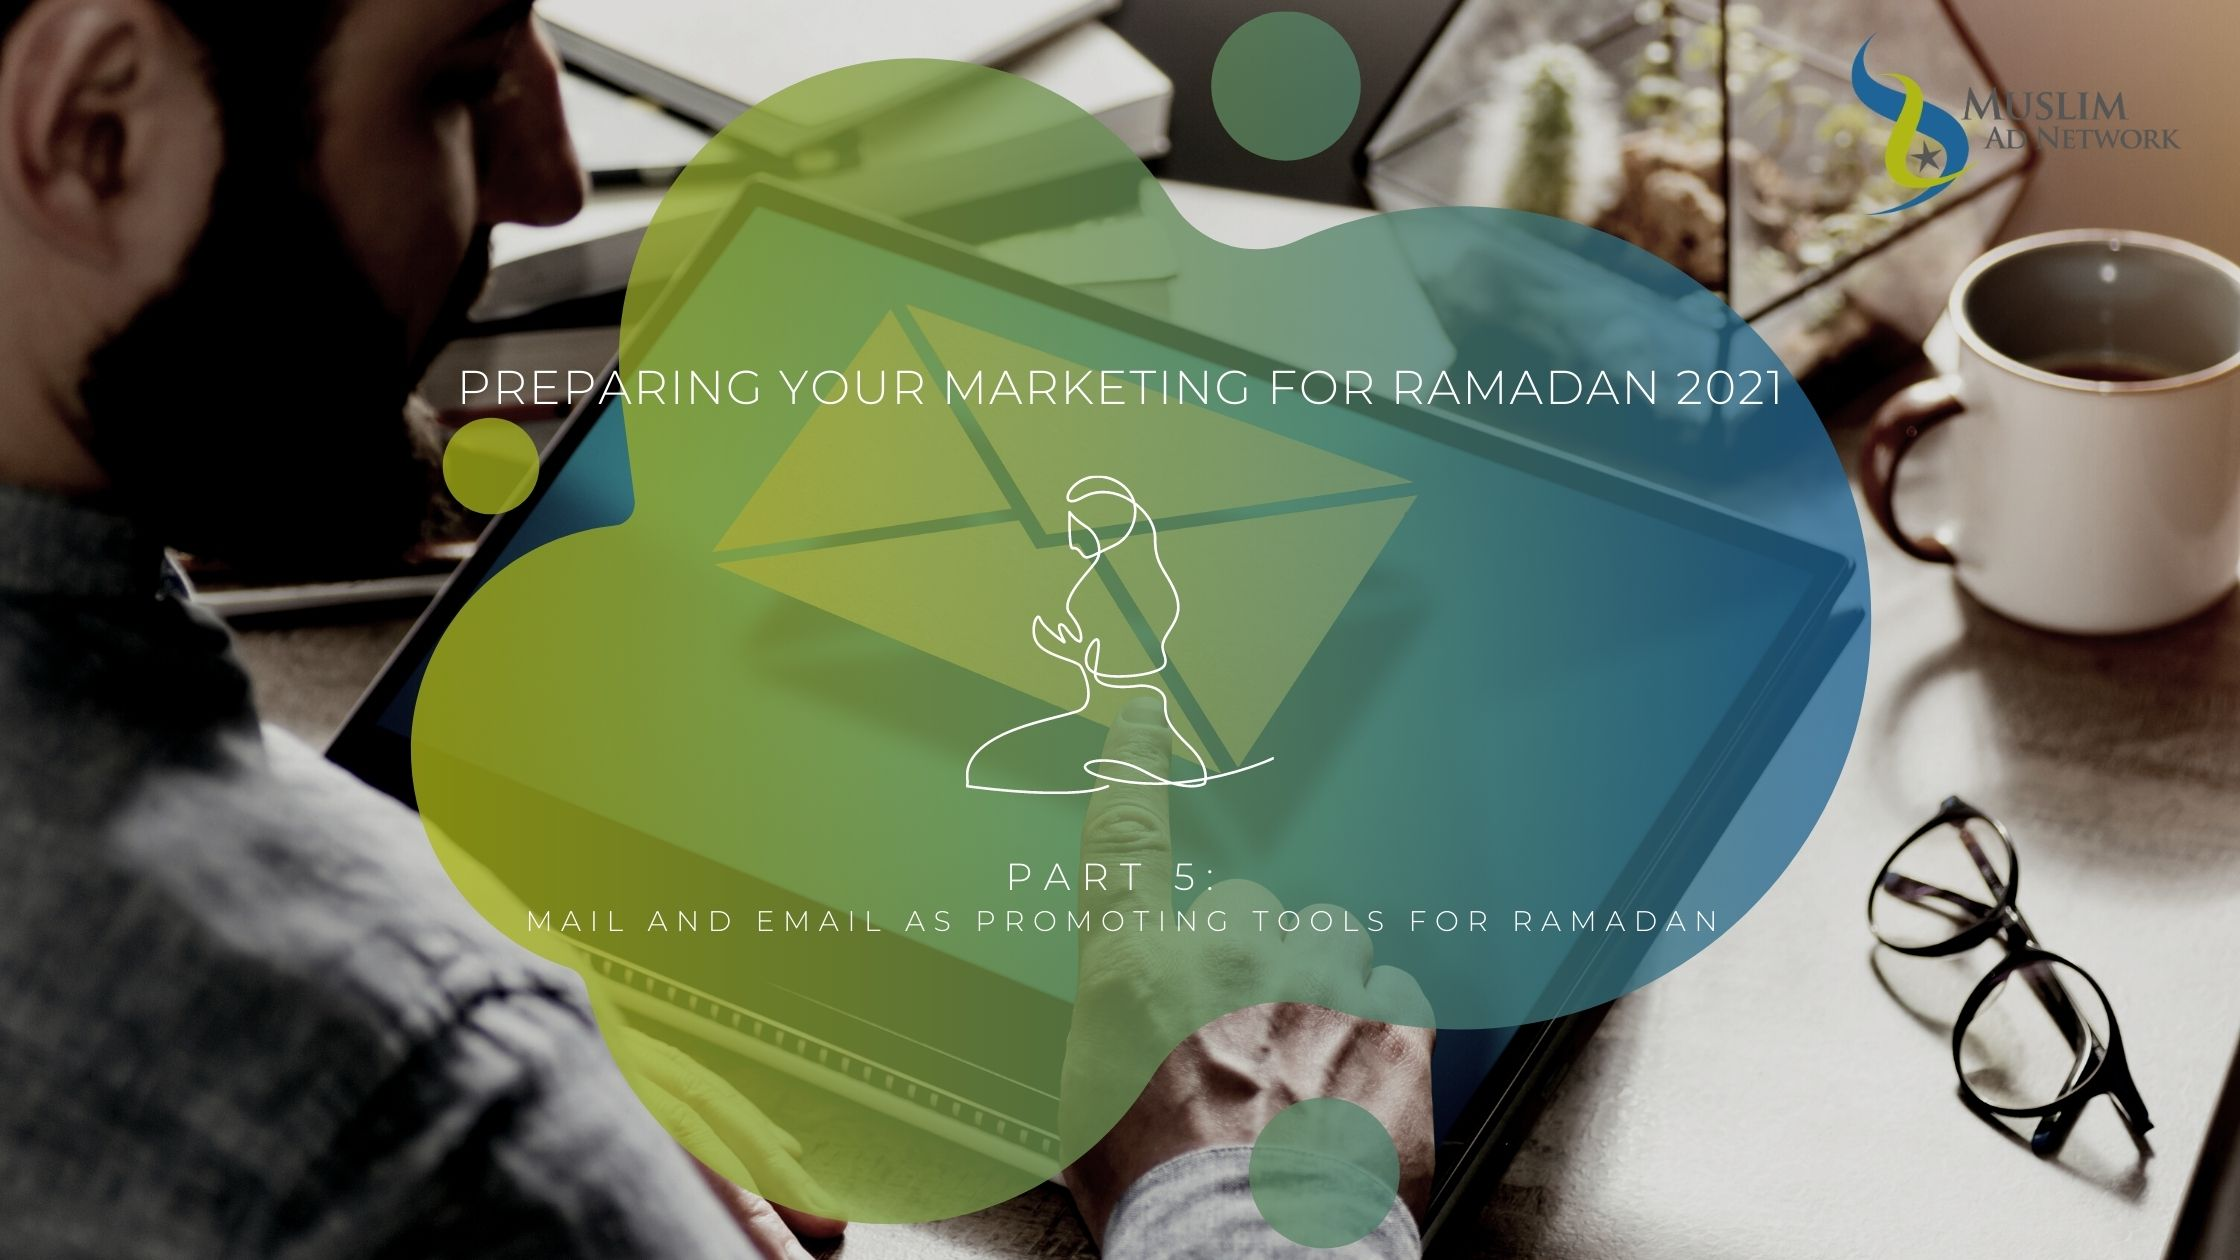 Email marketing to Muslims